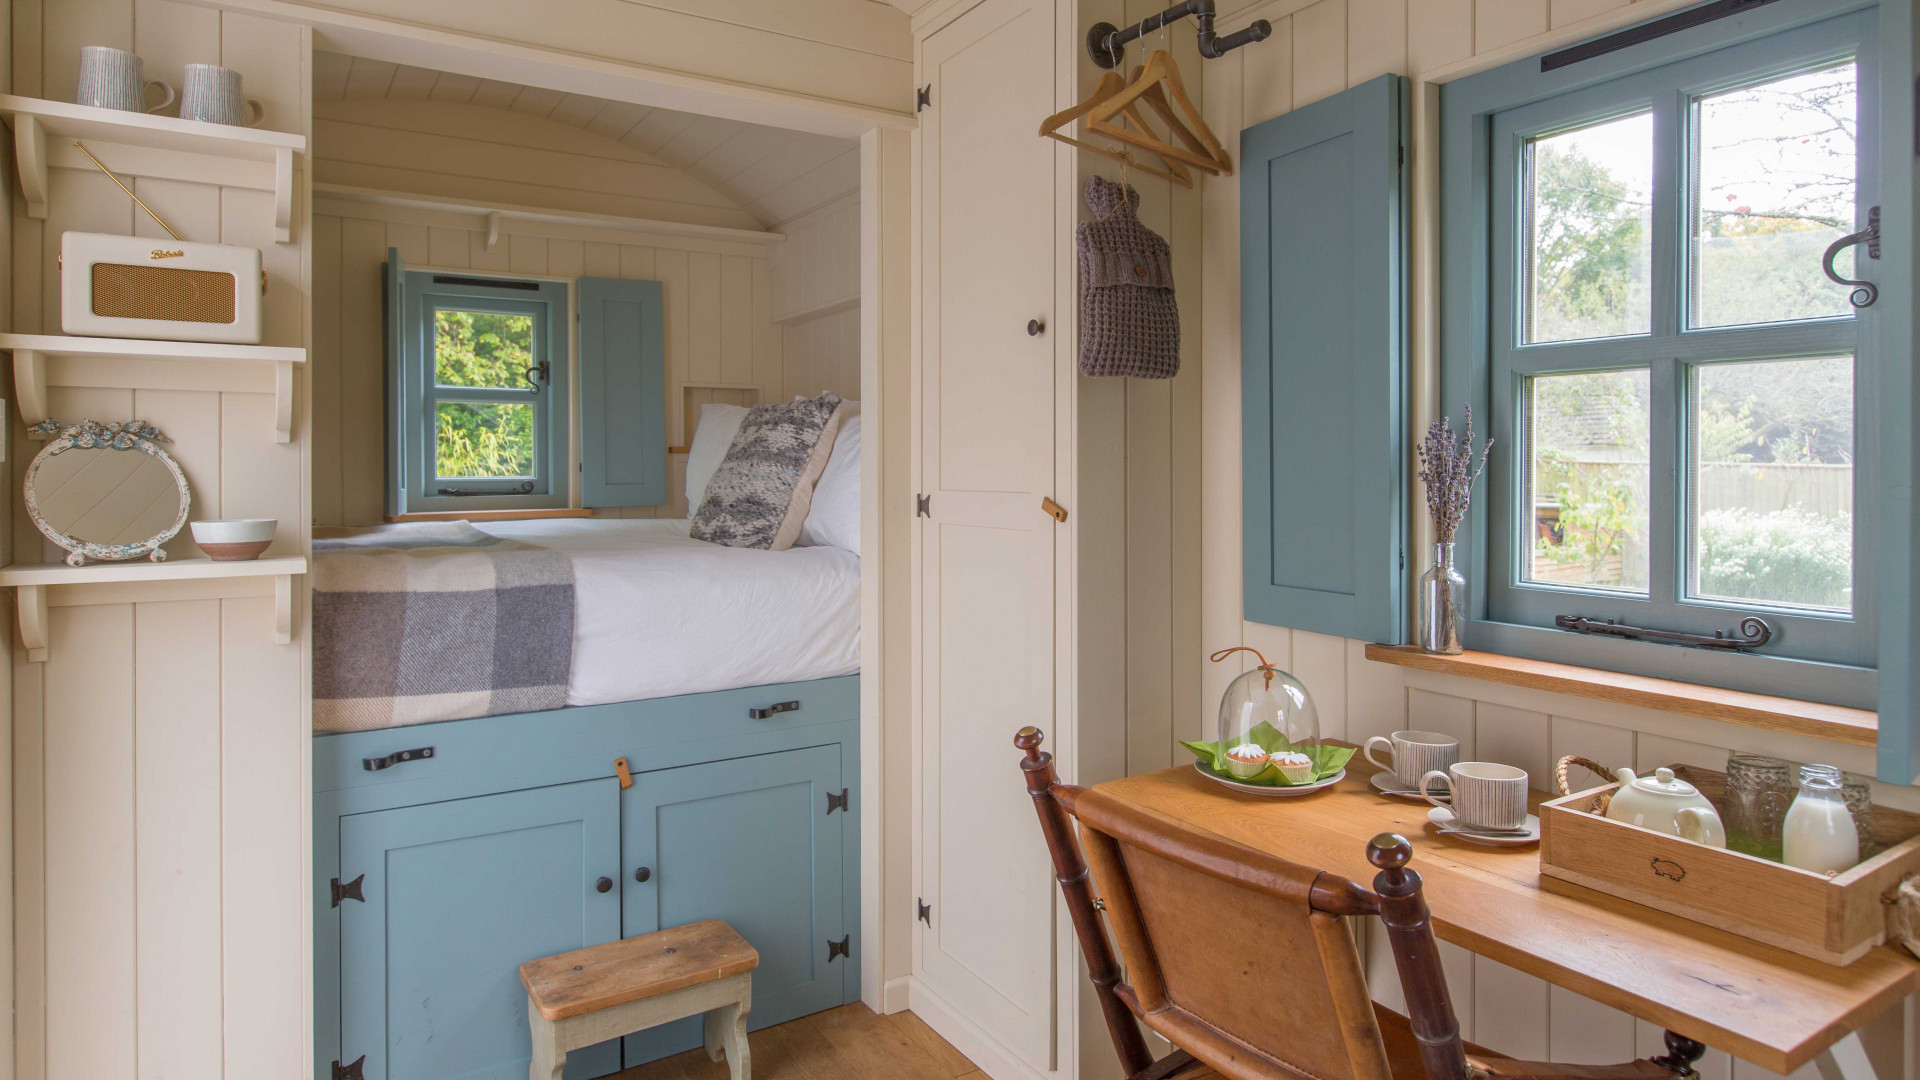 Interior of the shepherds hut at Daisybank B&B in the New Forest